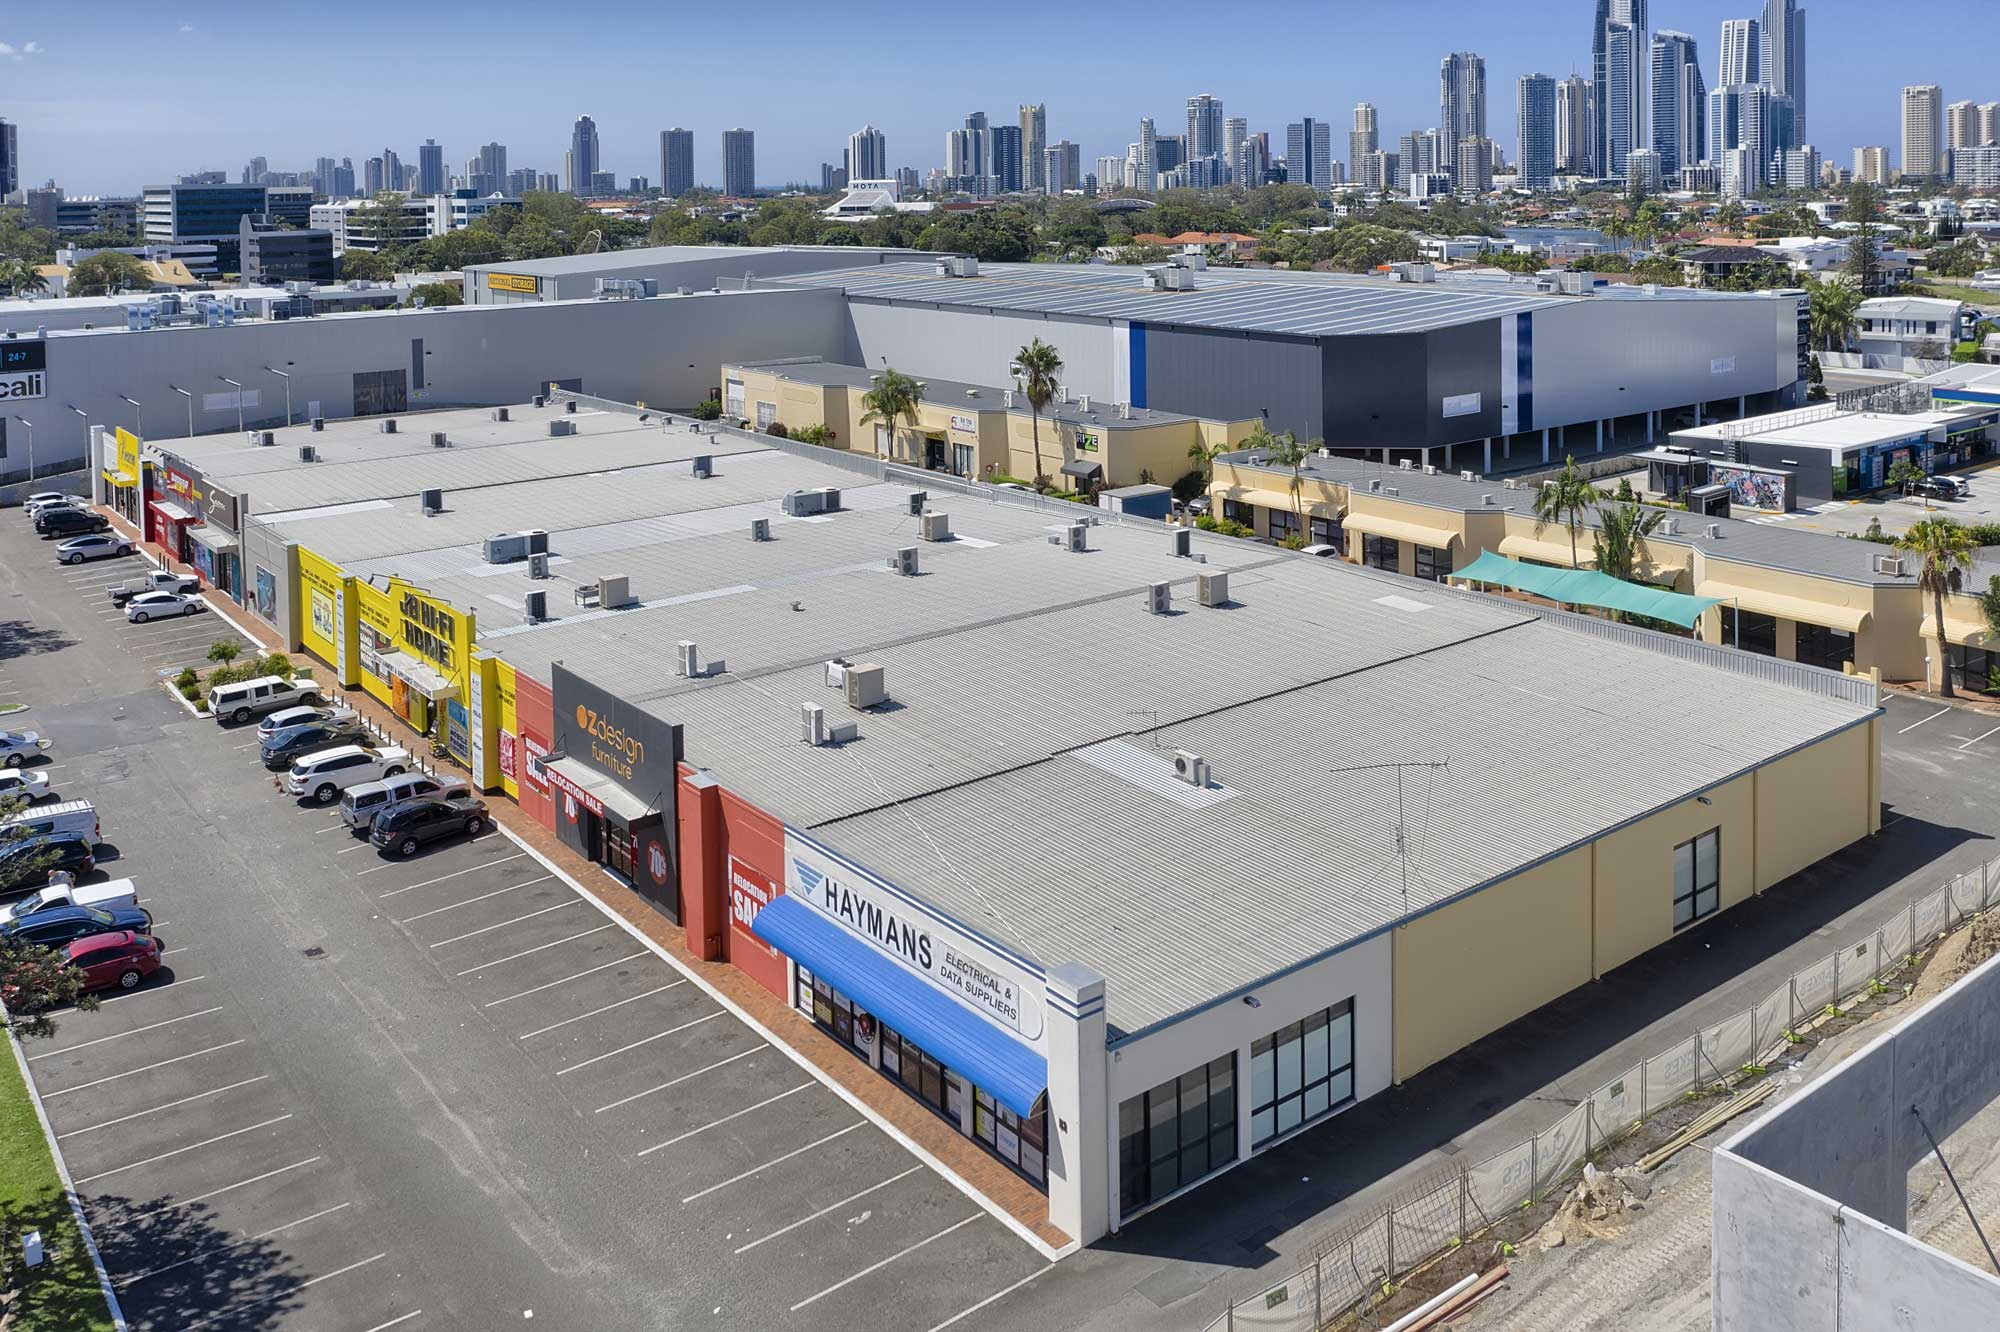 15 metres above the ground - drone photography of large format commercial building at Upton St, Bundall